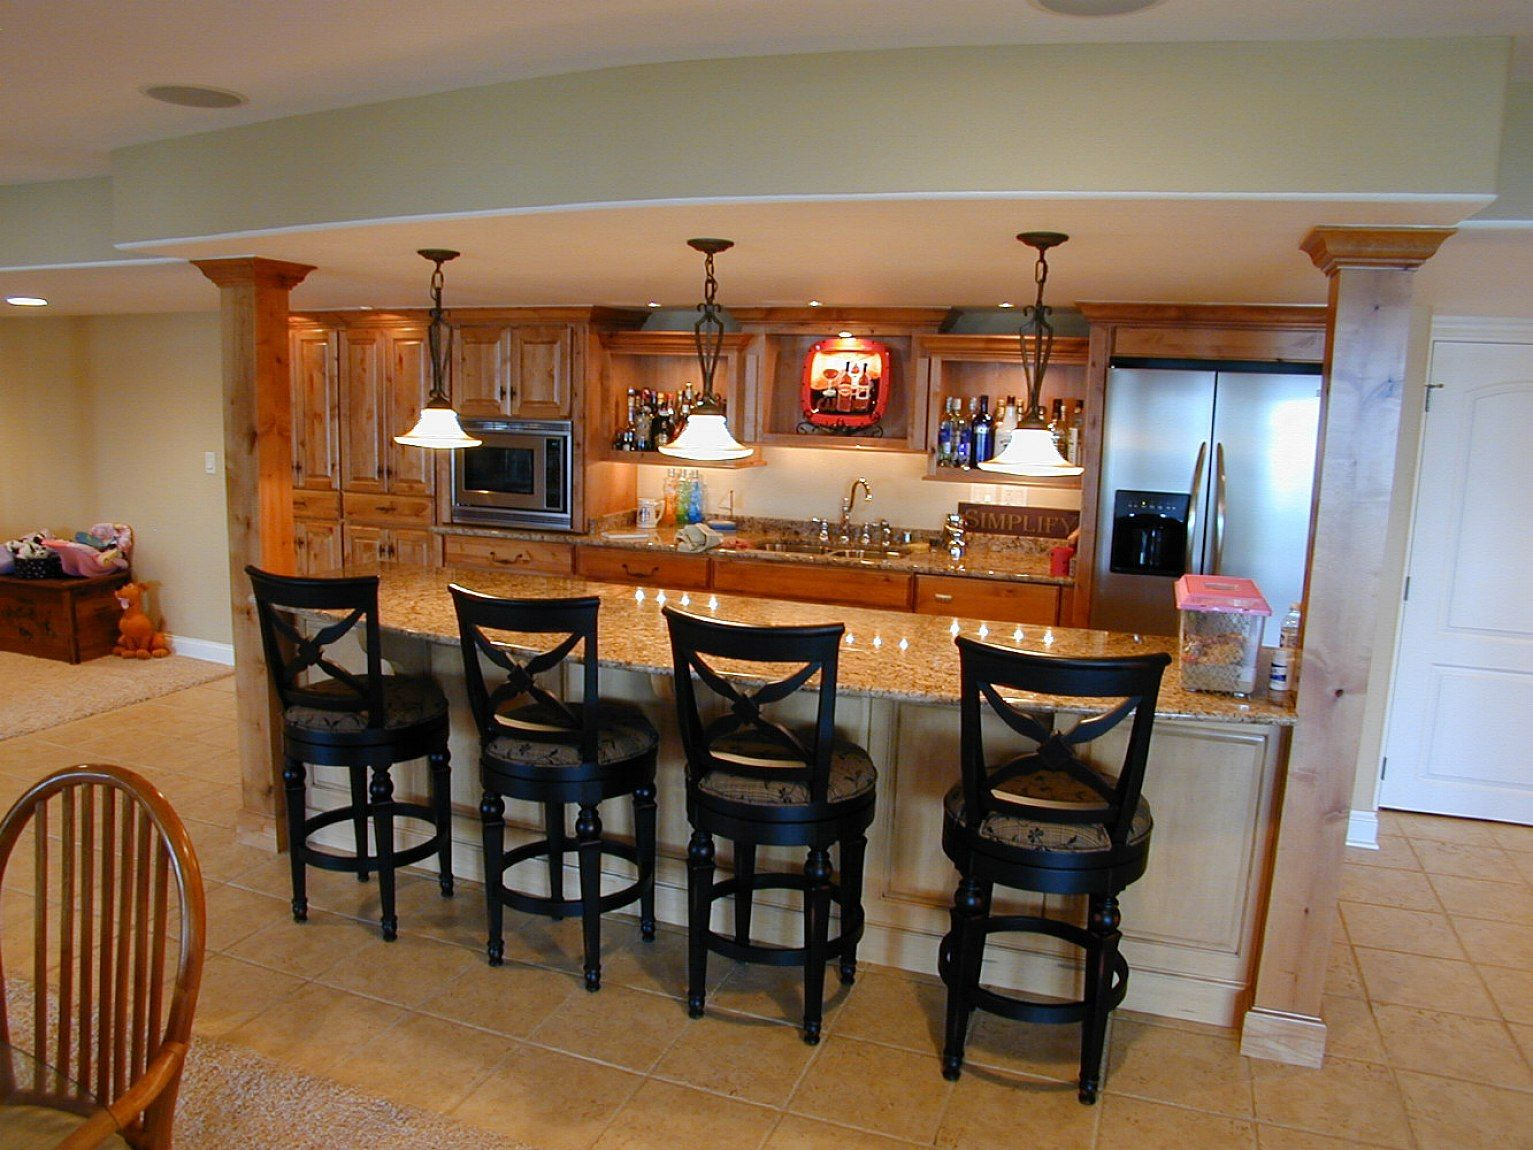 Basement Bar Remodeling Ideas Finished Basement Ideas  Basement Finishing With Mini Bar Design